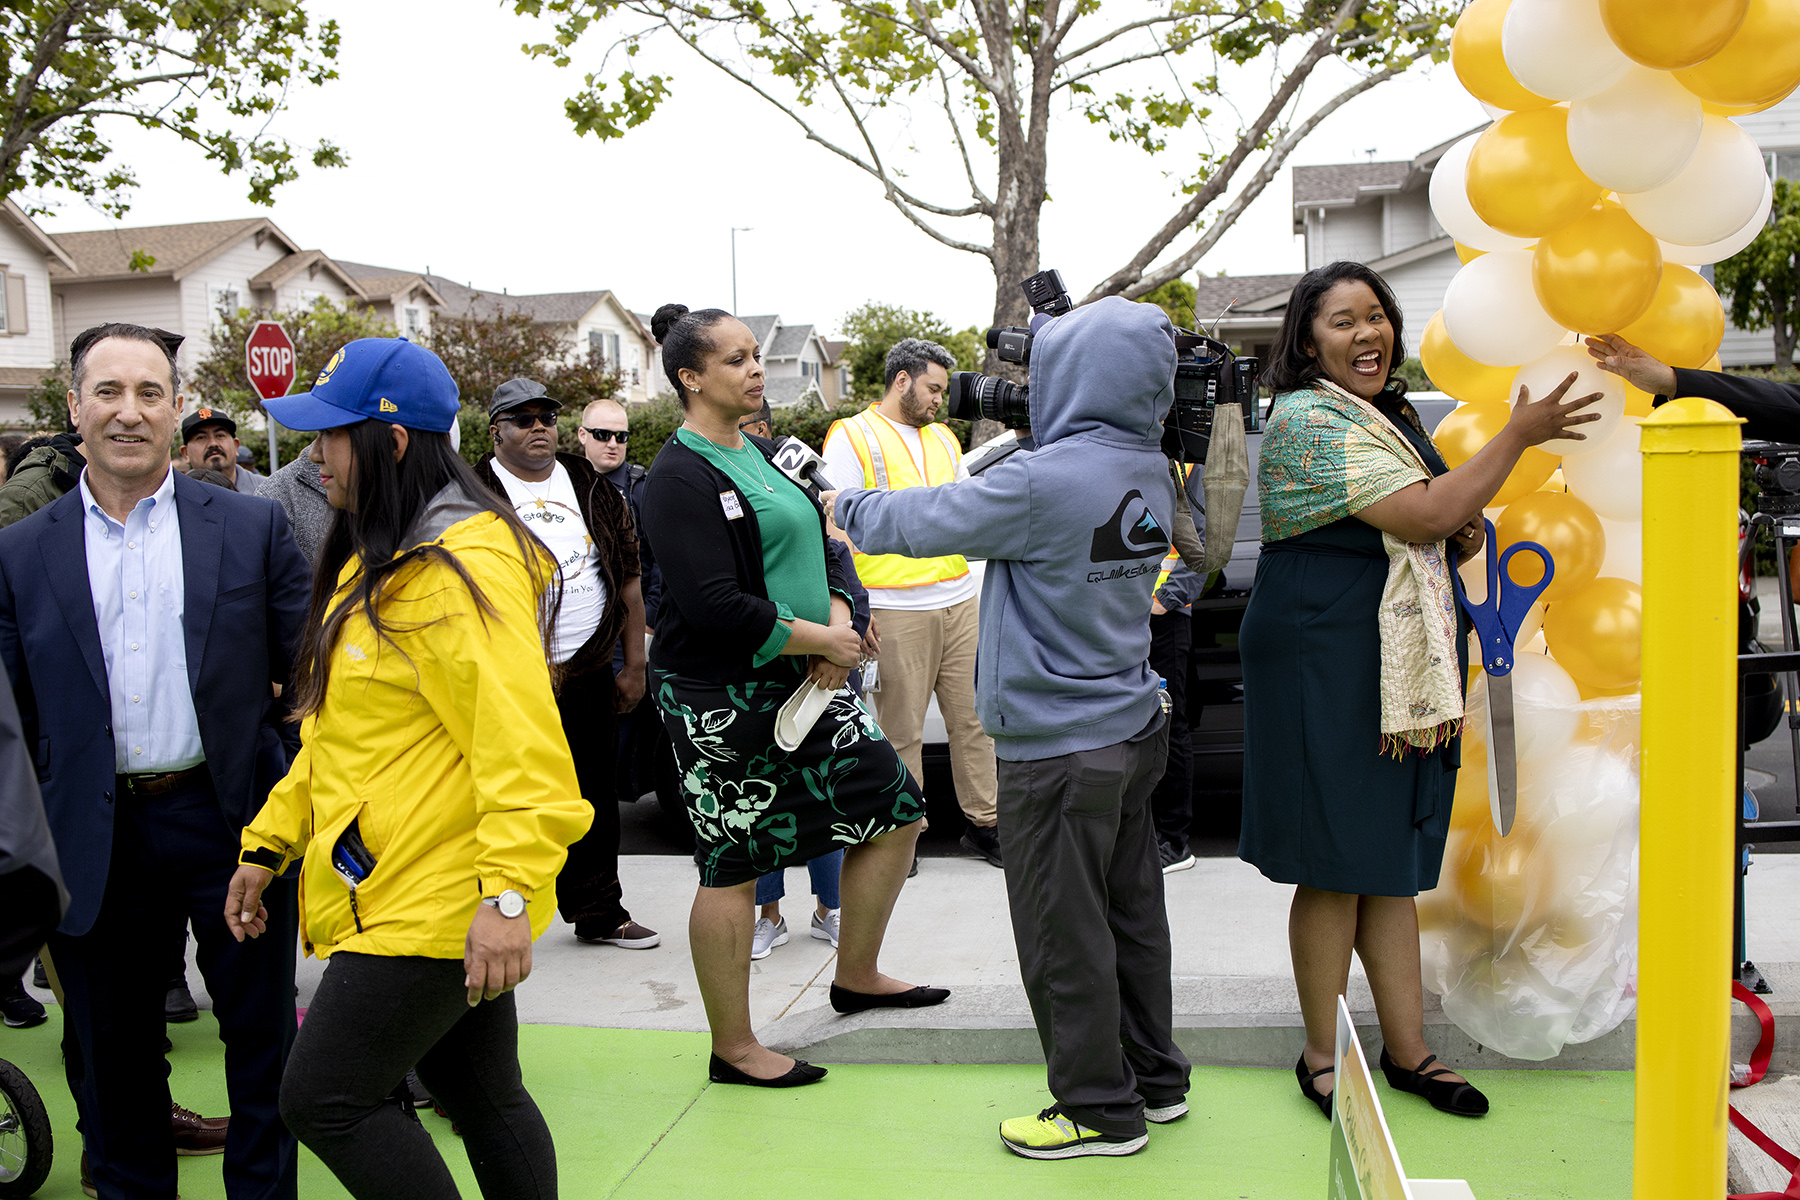 Mayor Lisa Gauthier (center) is interviewed as Vice Mayor Regina Wallace-Jones (right) holds back balloons at a ribbon-cutting ceremony for a new Highway 101 overpass in East Palo Alto, Calif., on May 18, 2019. The overpass connects the two sides of East Palo Alto that have been historically divided by Highway 101. Previously the only crossing for bikes and pedestrians was a small, narrow sidewalk on the busy University Avenue.